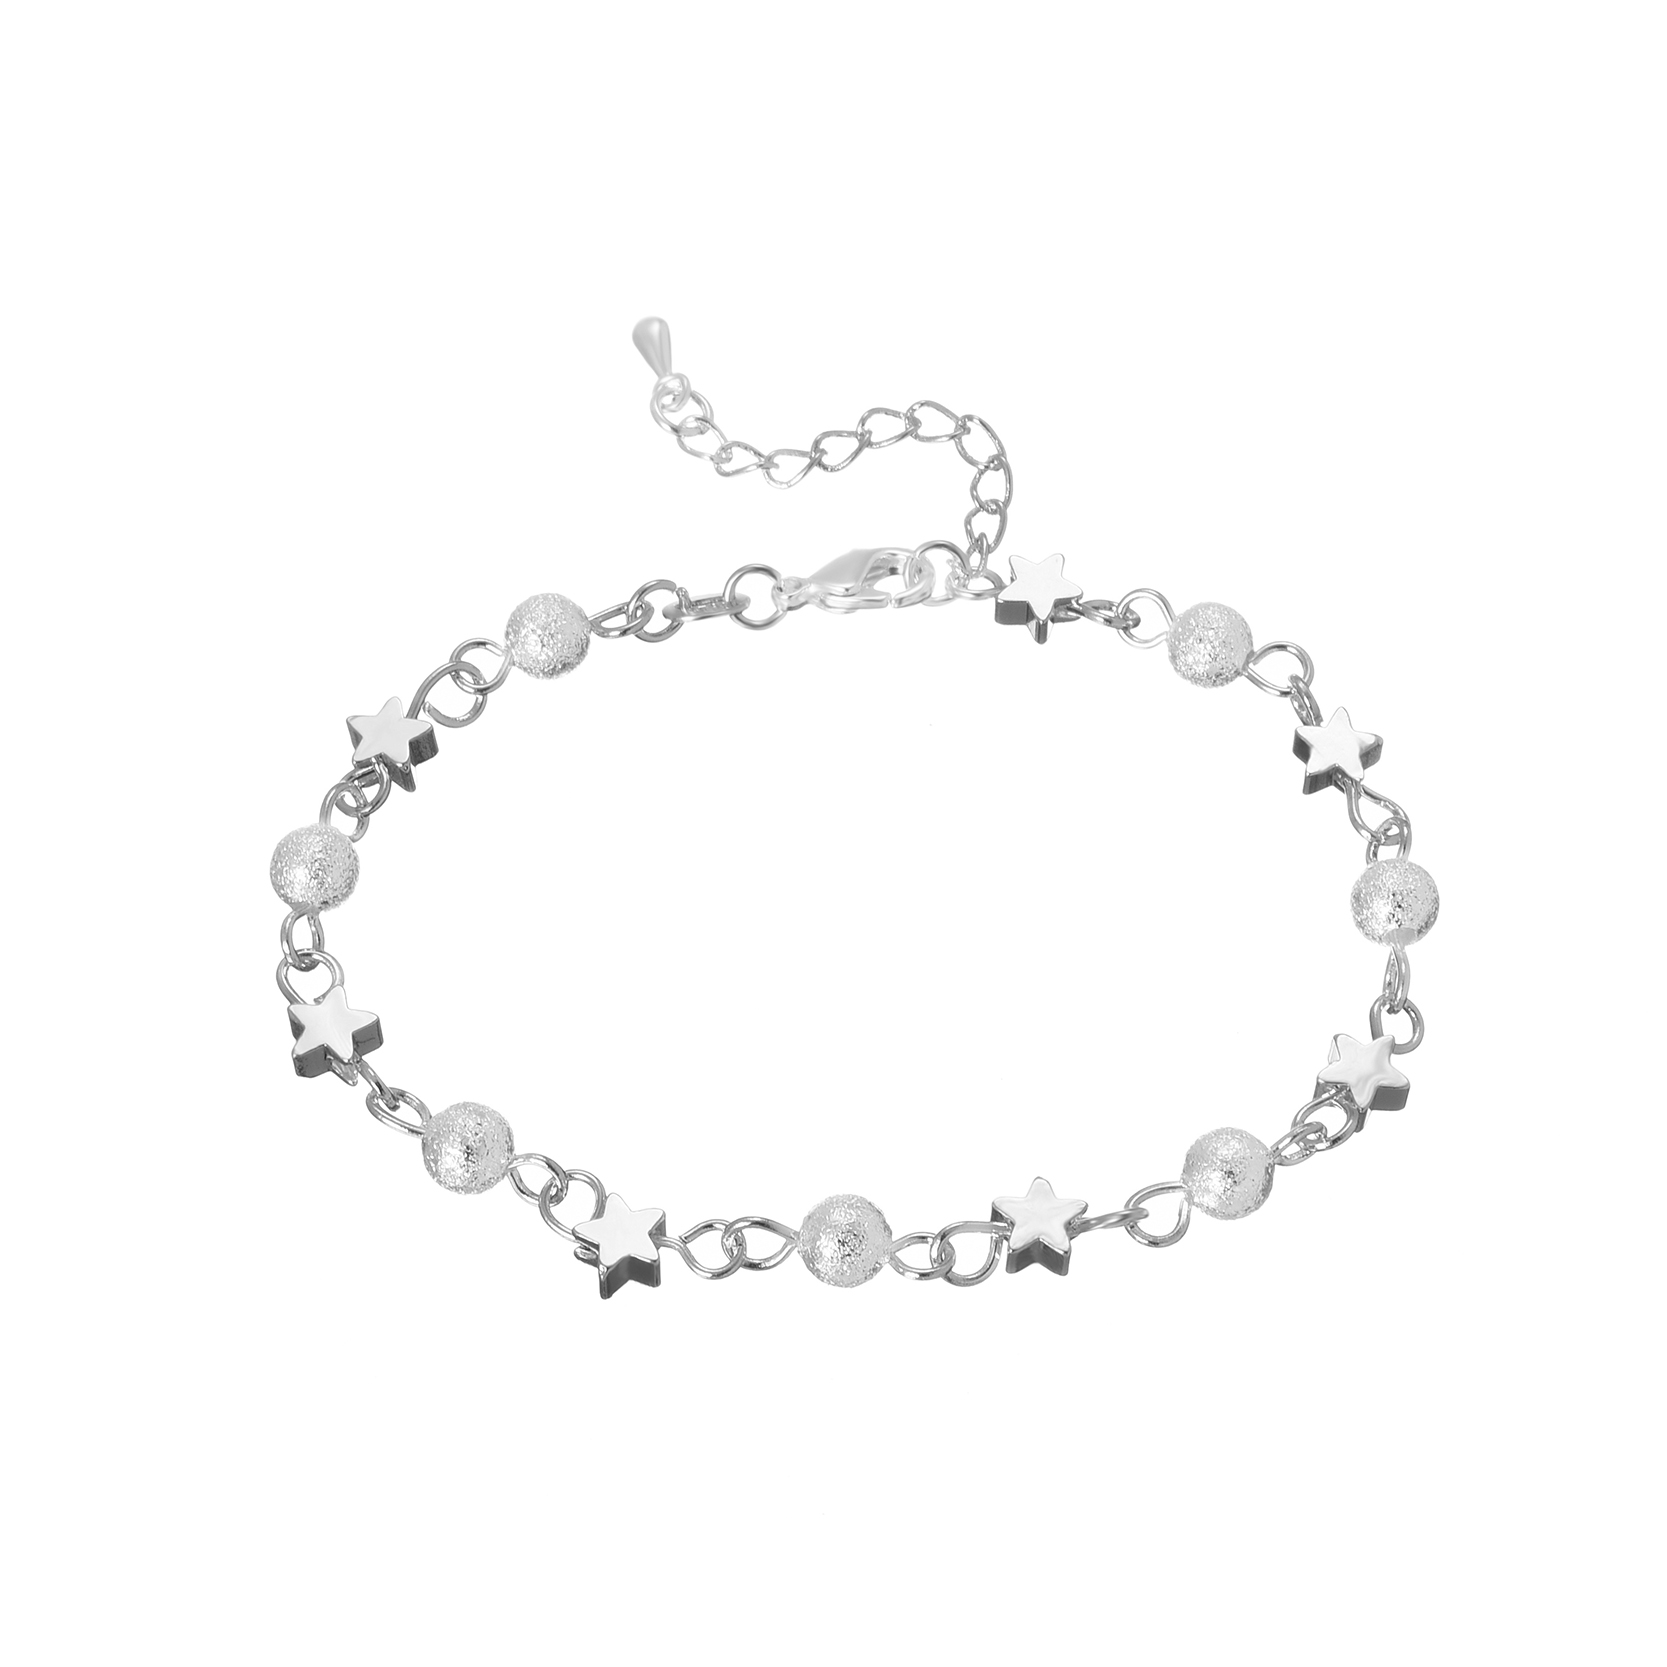 Silver Bracelet Women Summer Fashion Scrub Star Beads ...